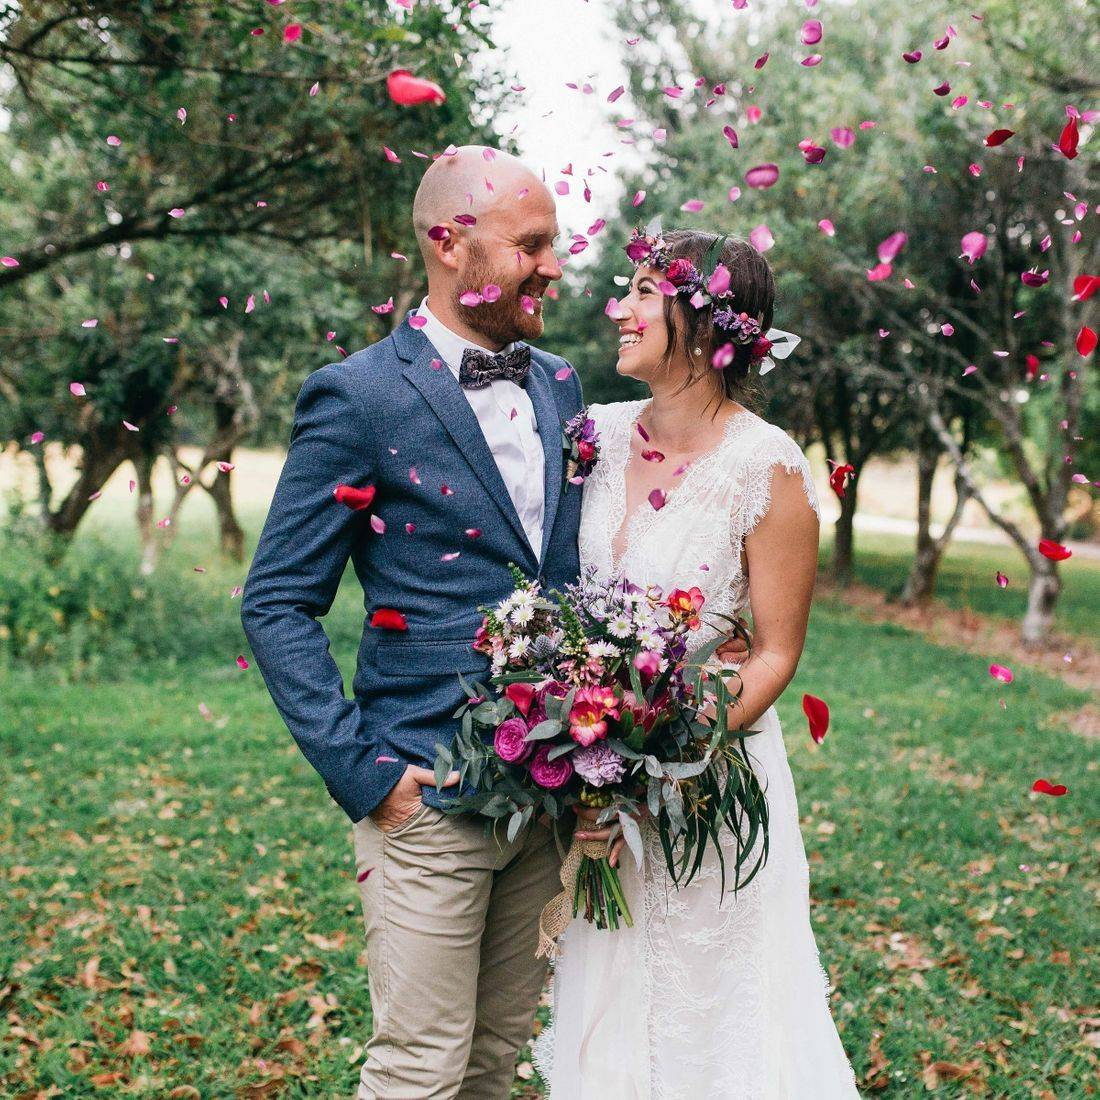 Samantha and Tom's Fig Tree Wedding